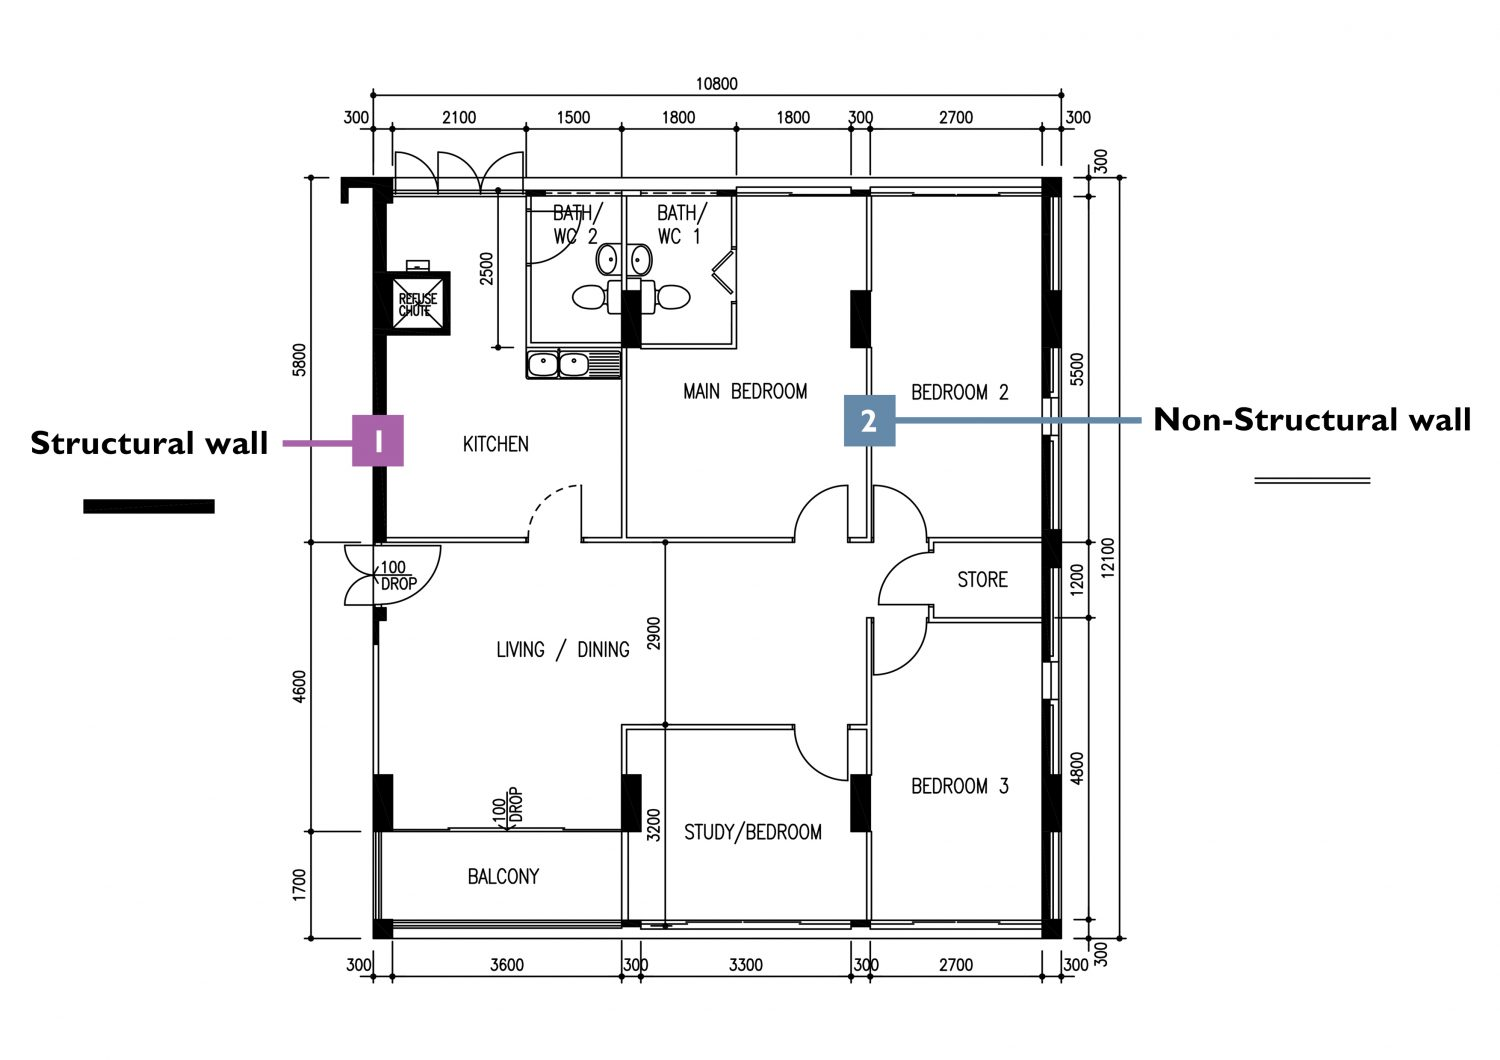 how to read HDB floor plans (walls)